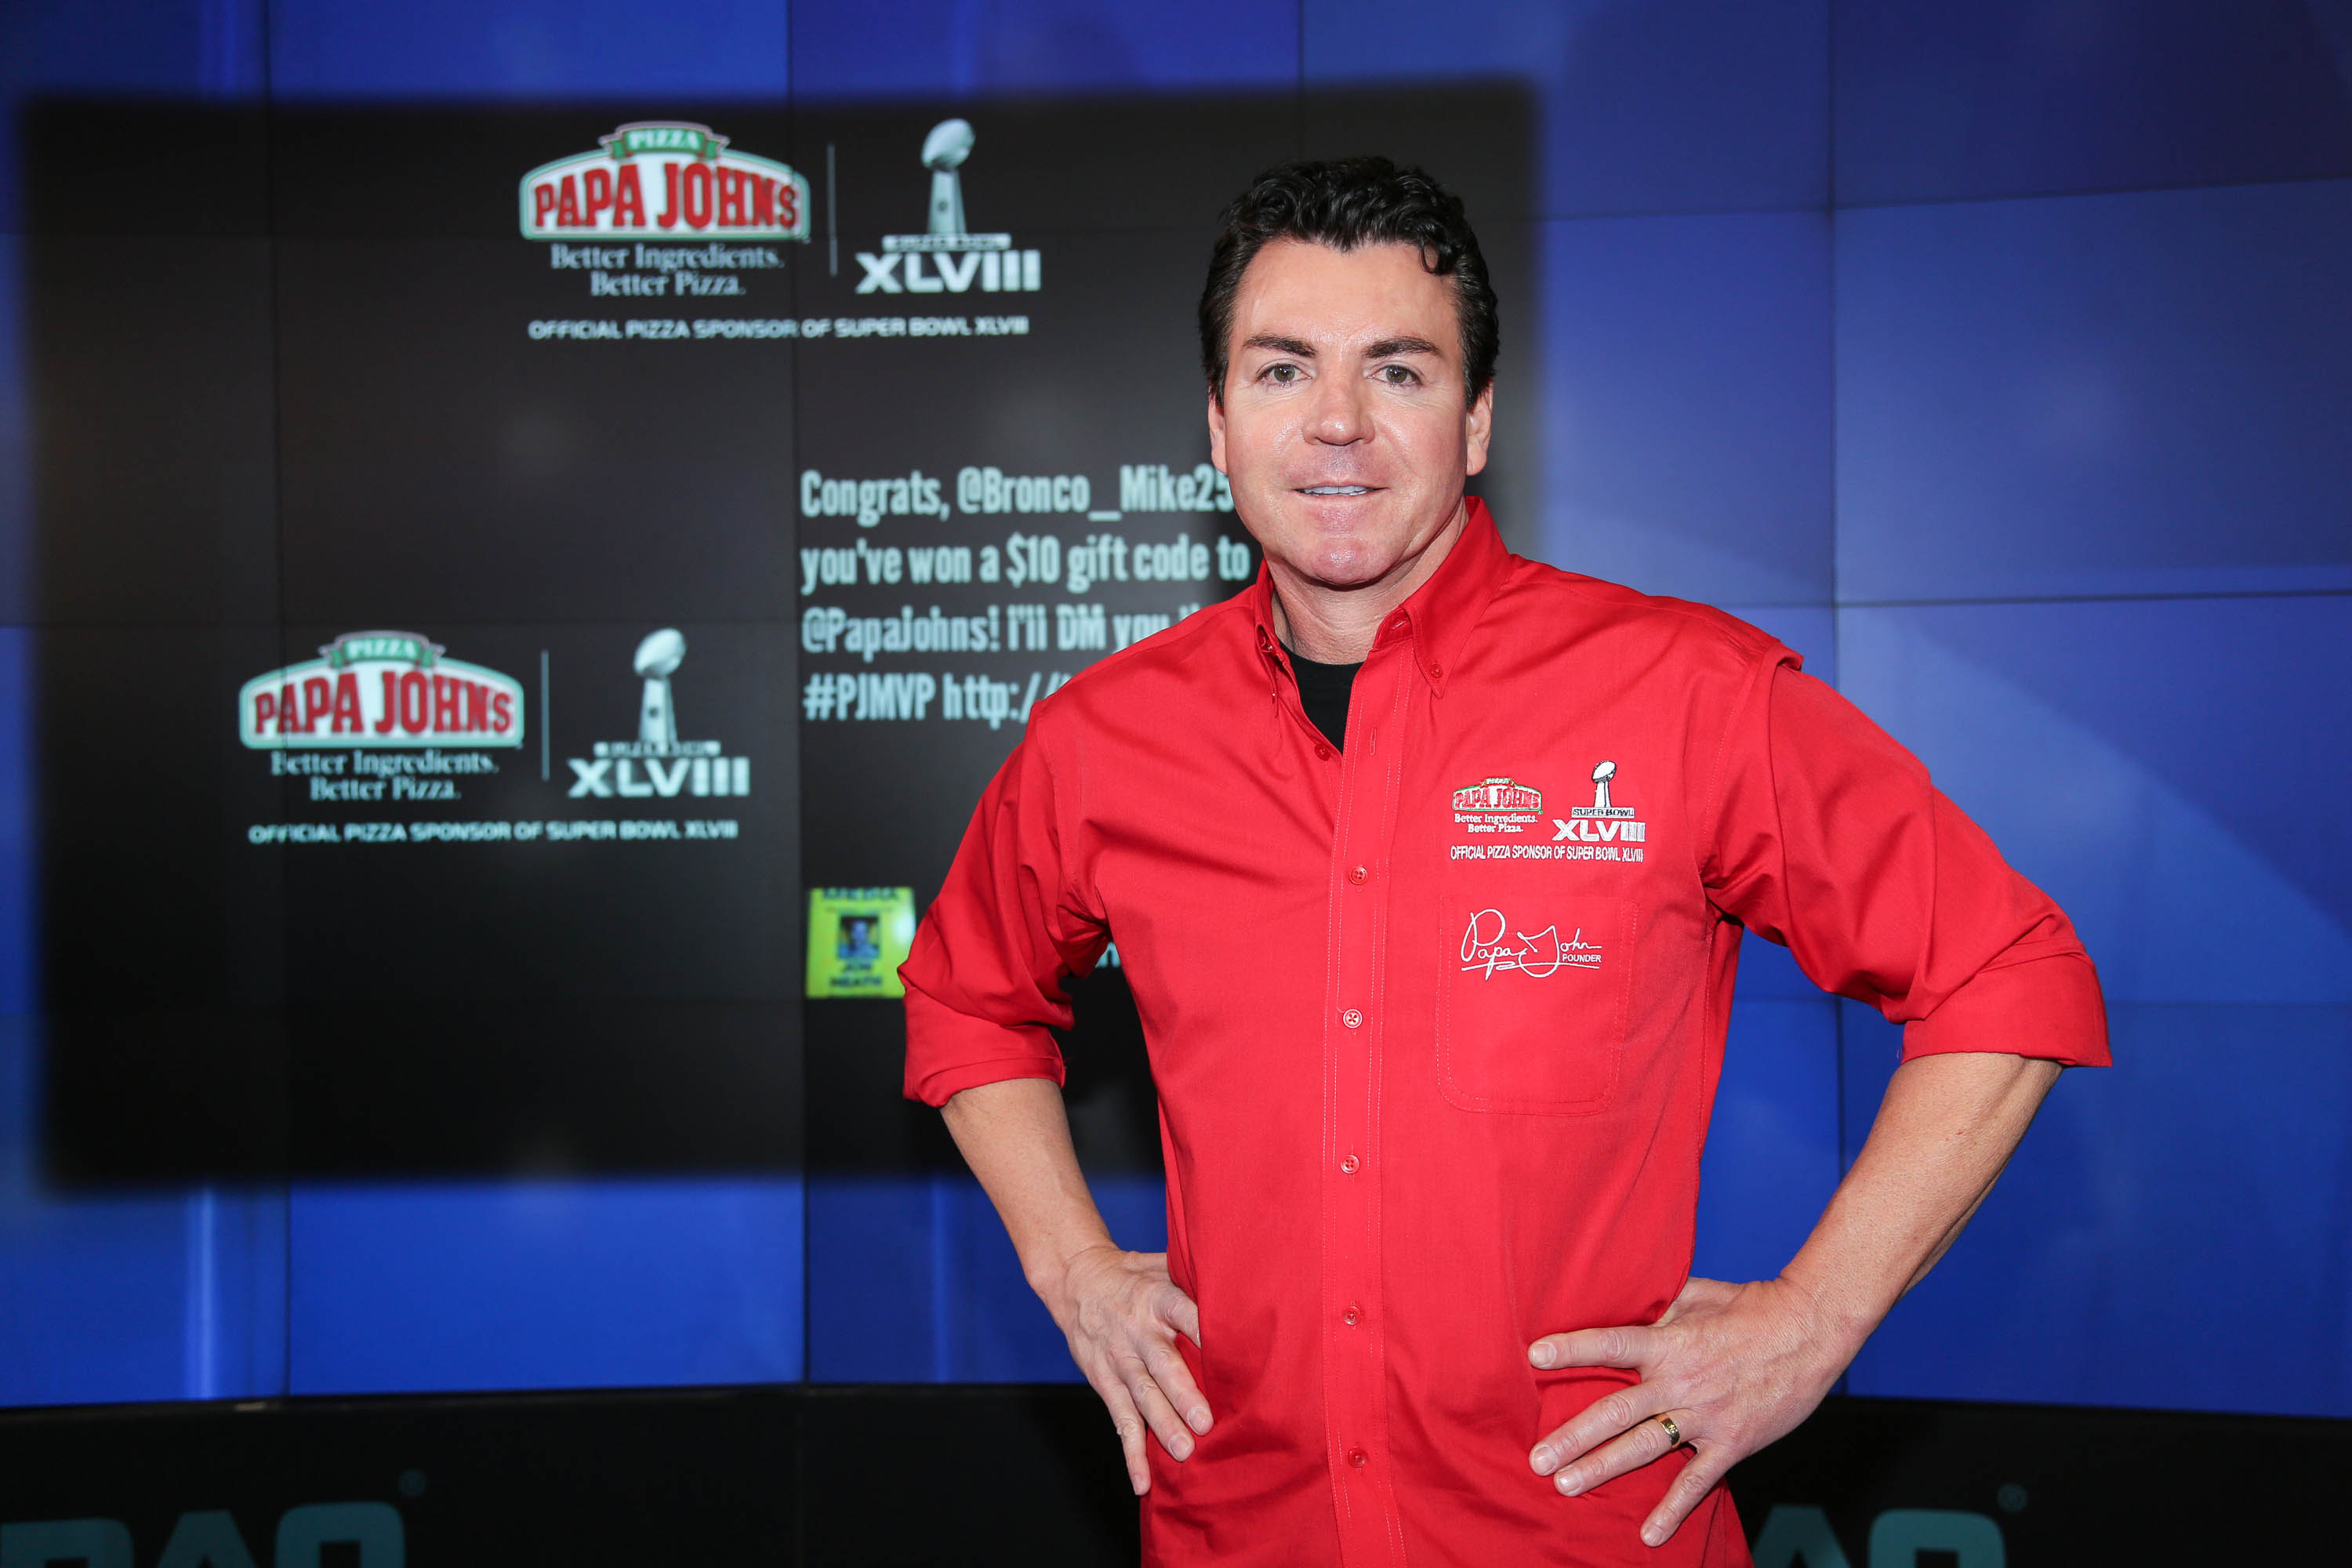 Papa John's Exiled Founder John Schnatter Is Going to War With the Company's Leaders